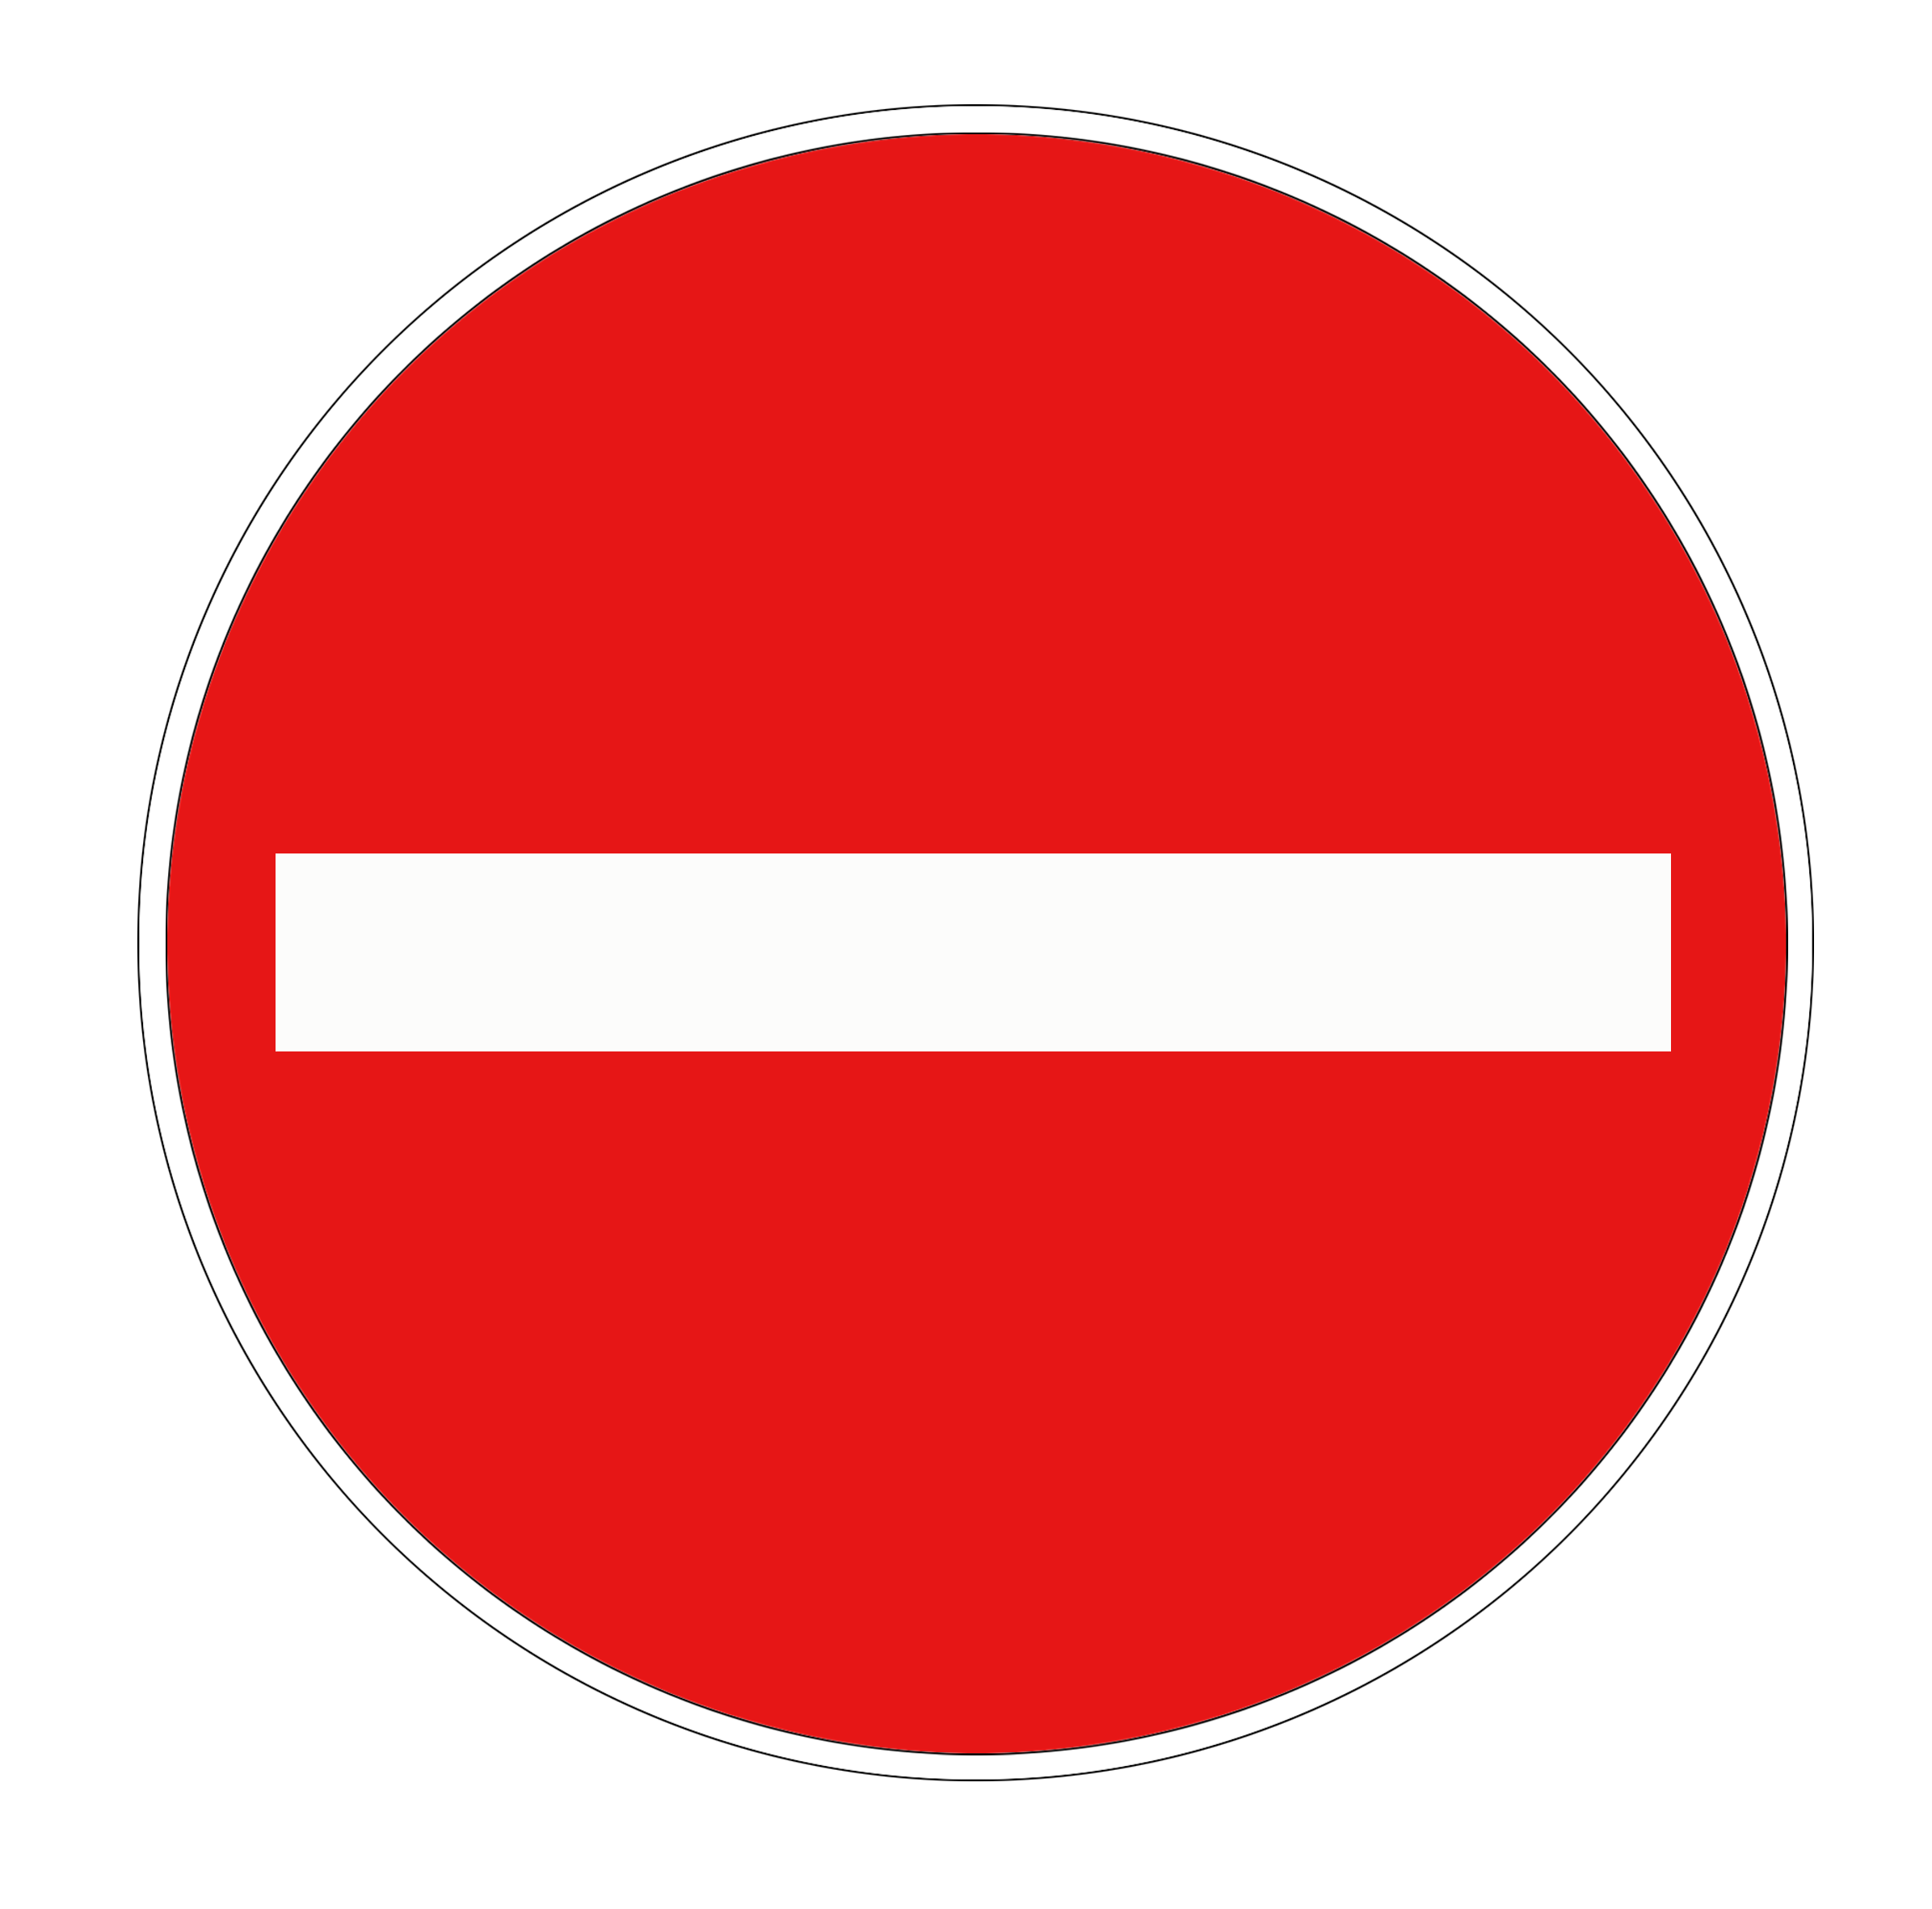 Road Sign, Traffic, Sign, Rule, Red, HQ Photo